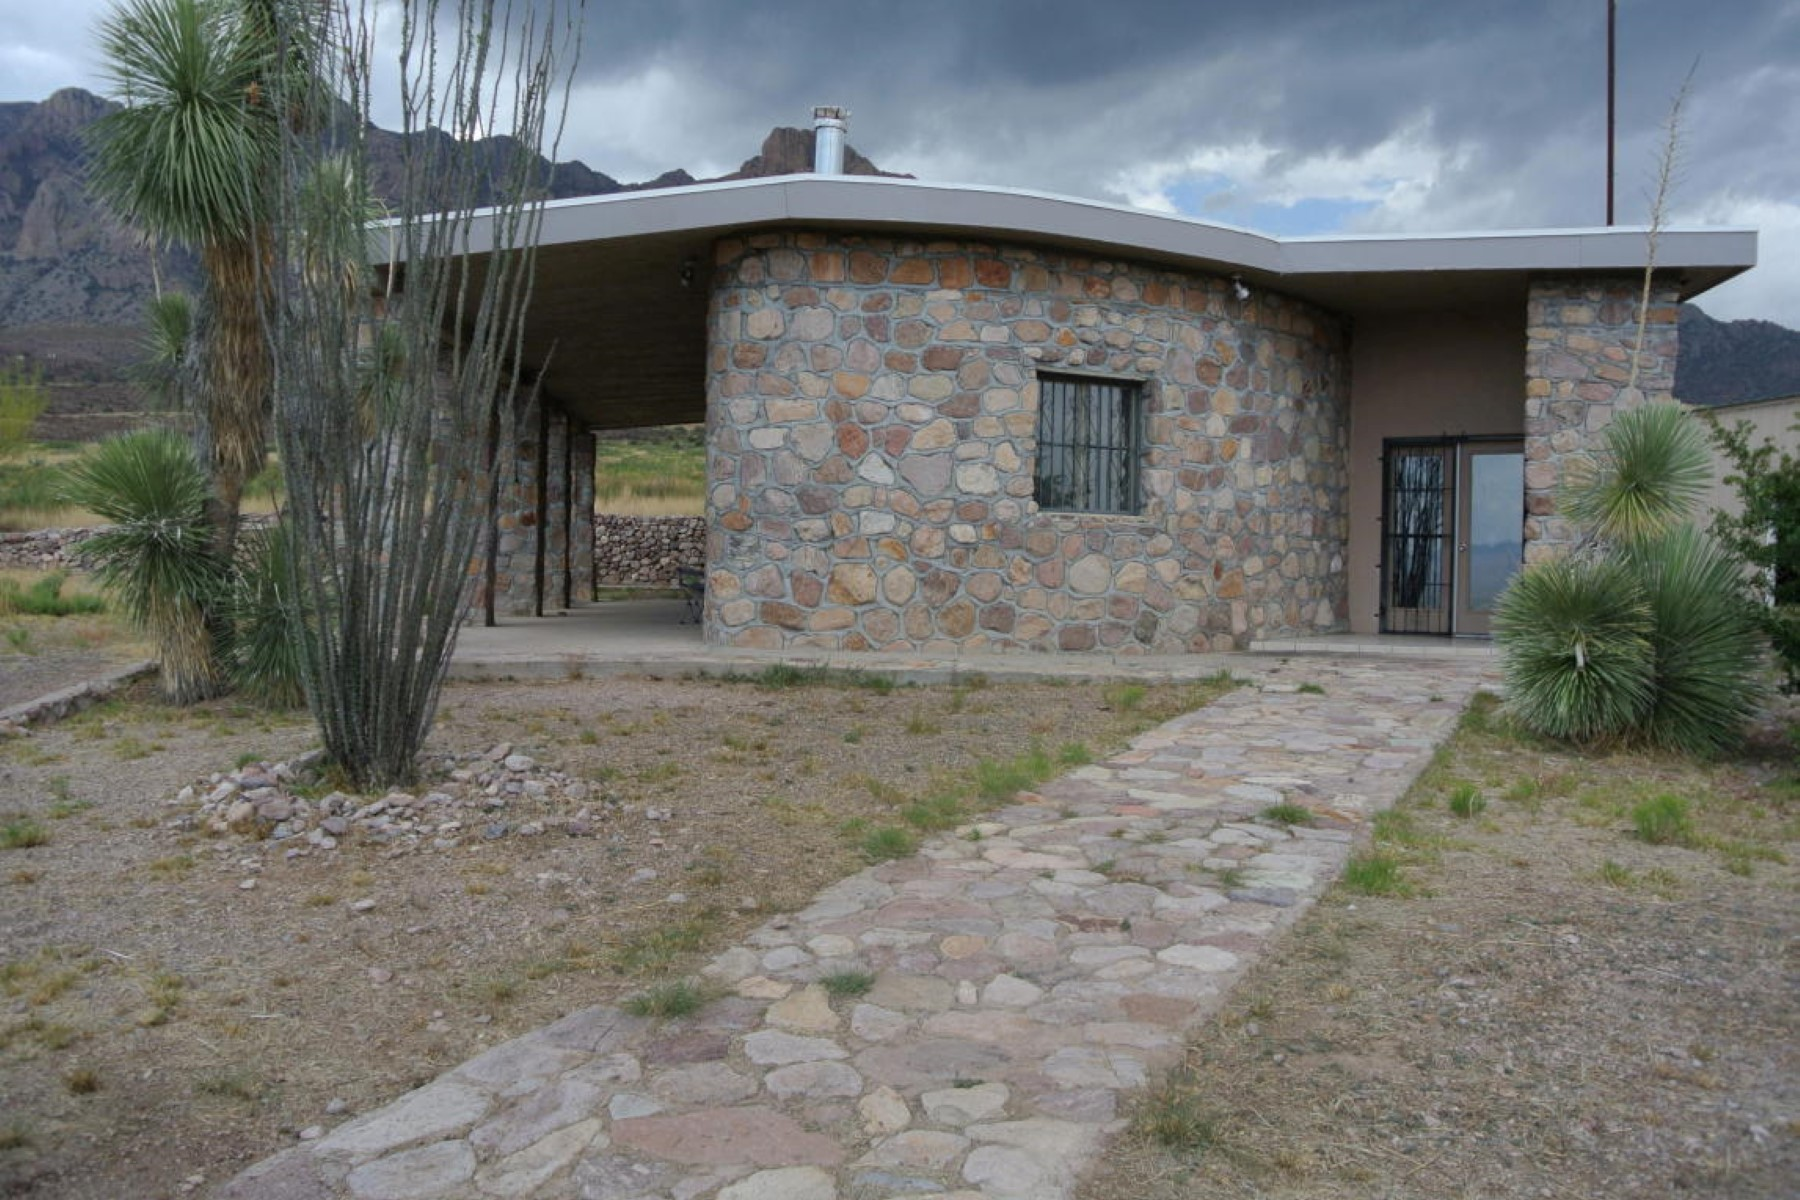 Moradia para Venda às Lovely home in South Eastern Arizona 777 W McReynolds Way Portal, Arizona, 85632 Estados Unidos